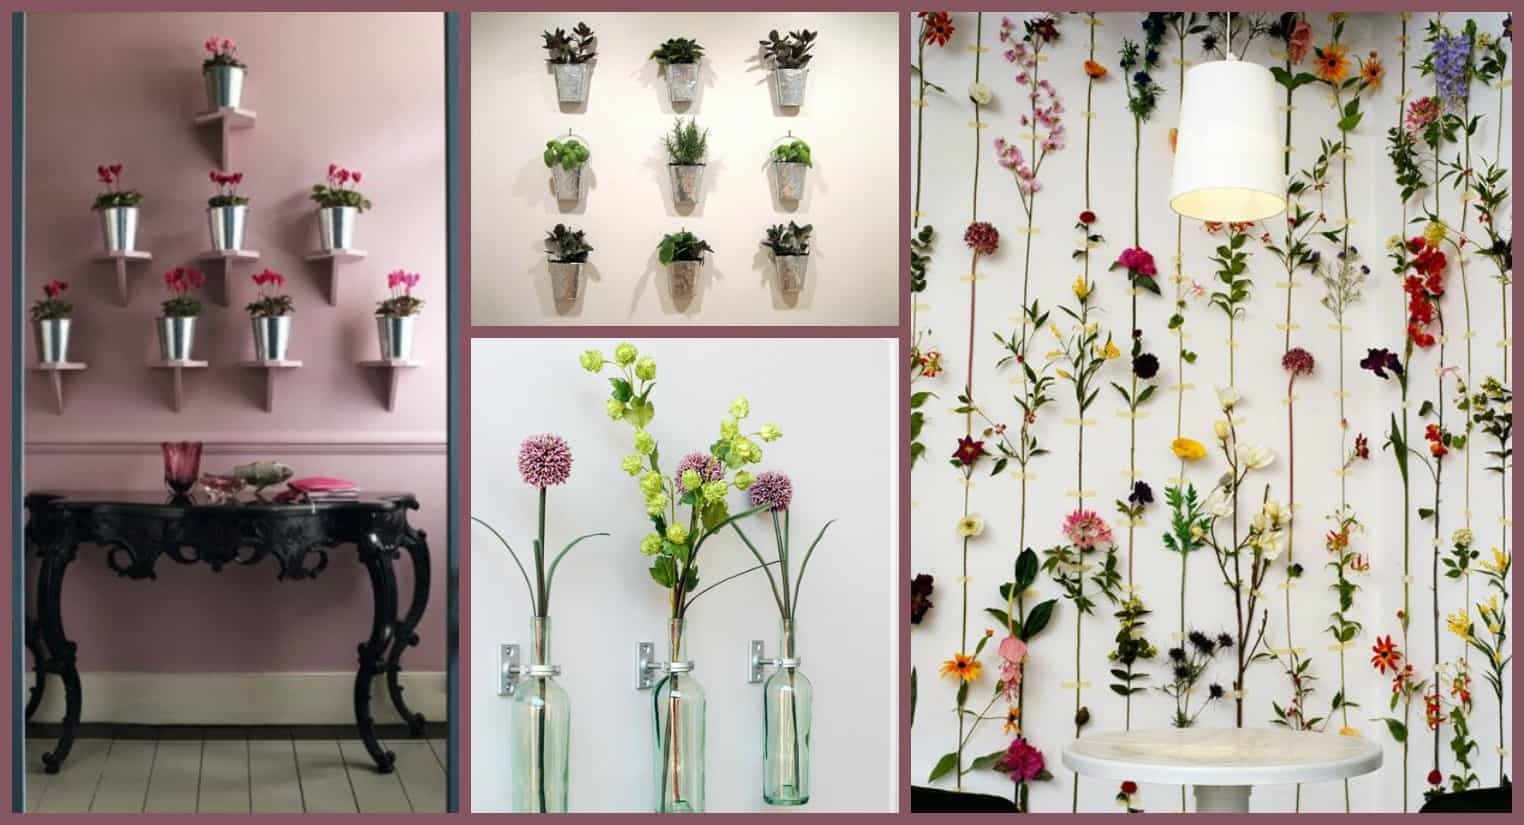 Diy 10 idee su come decorare una parete di casa - Decorare una porta ...